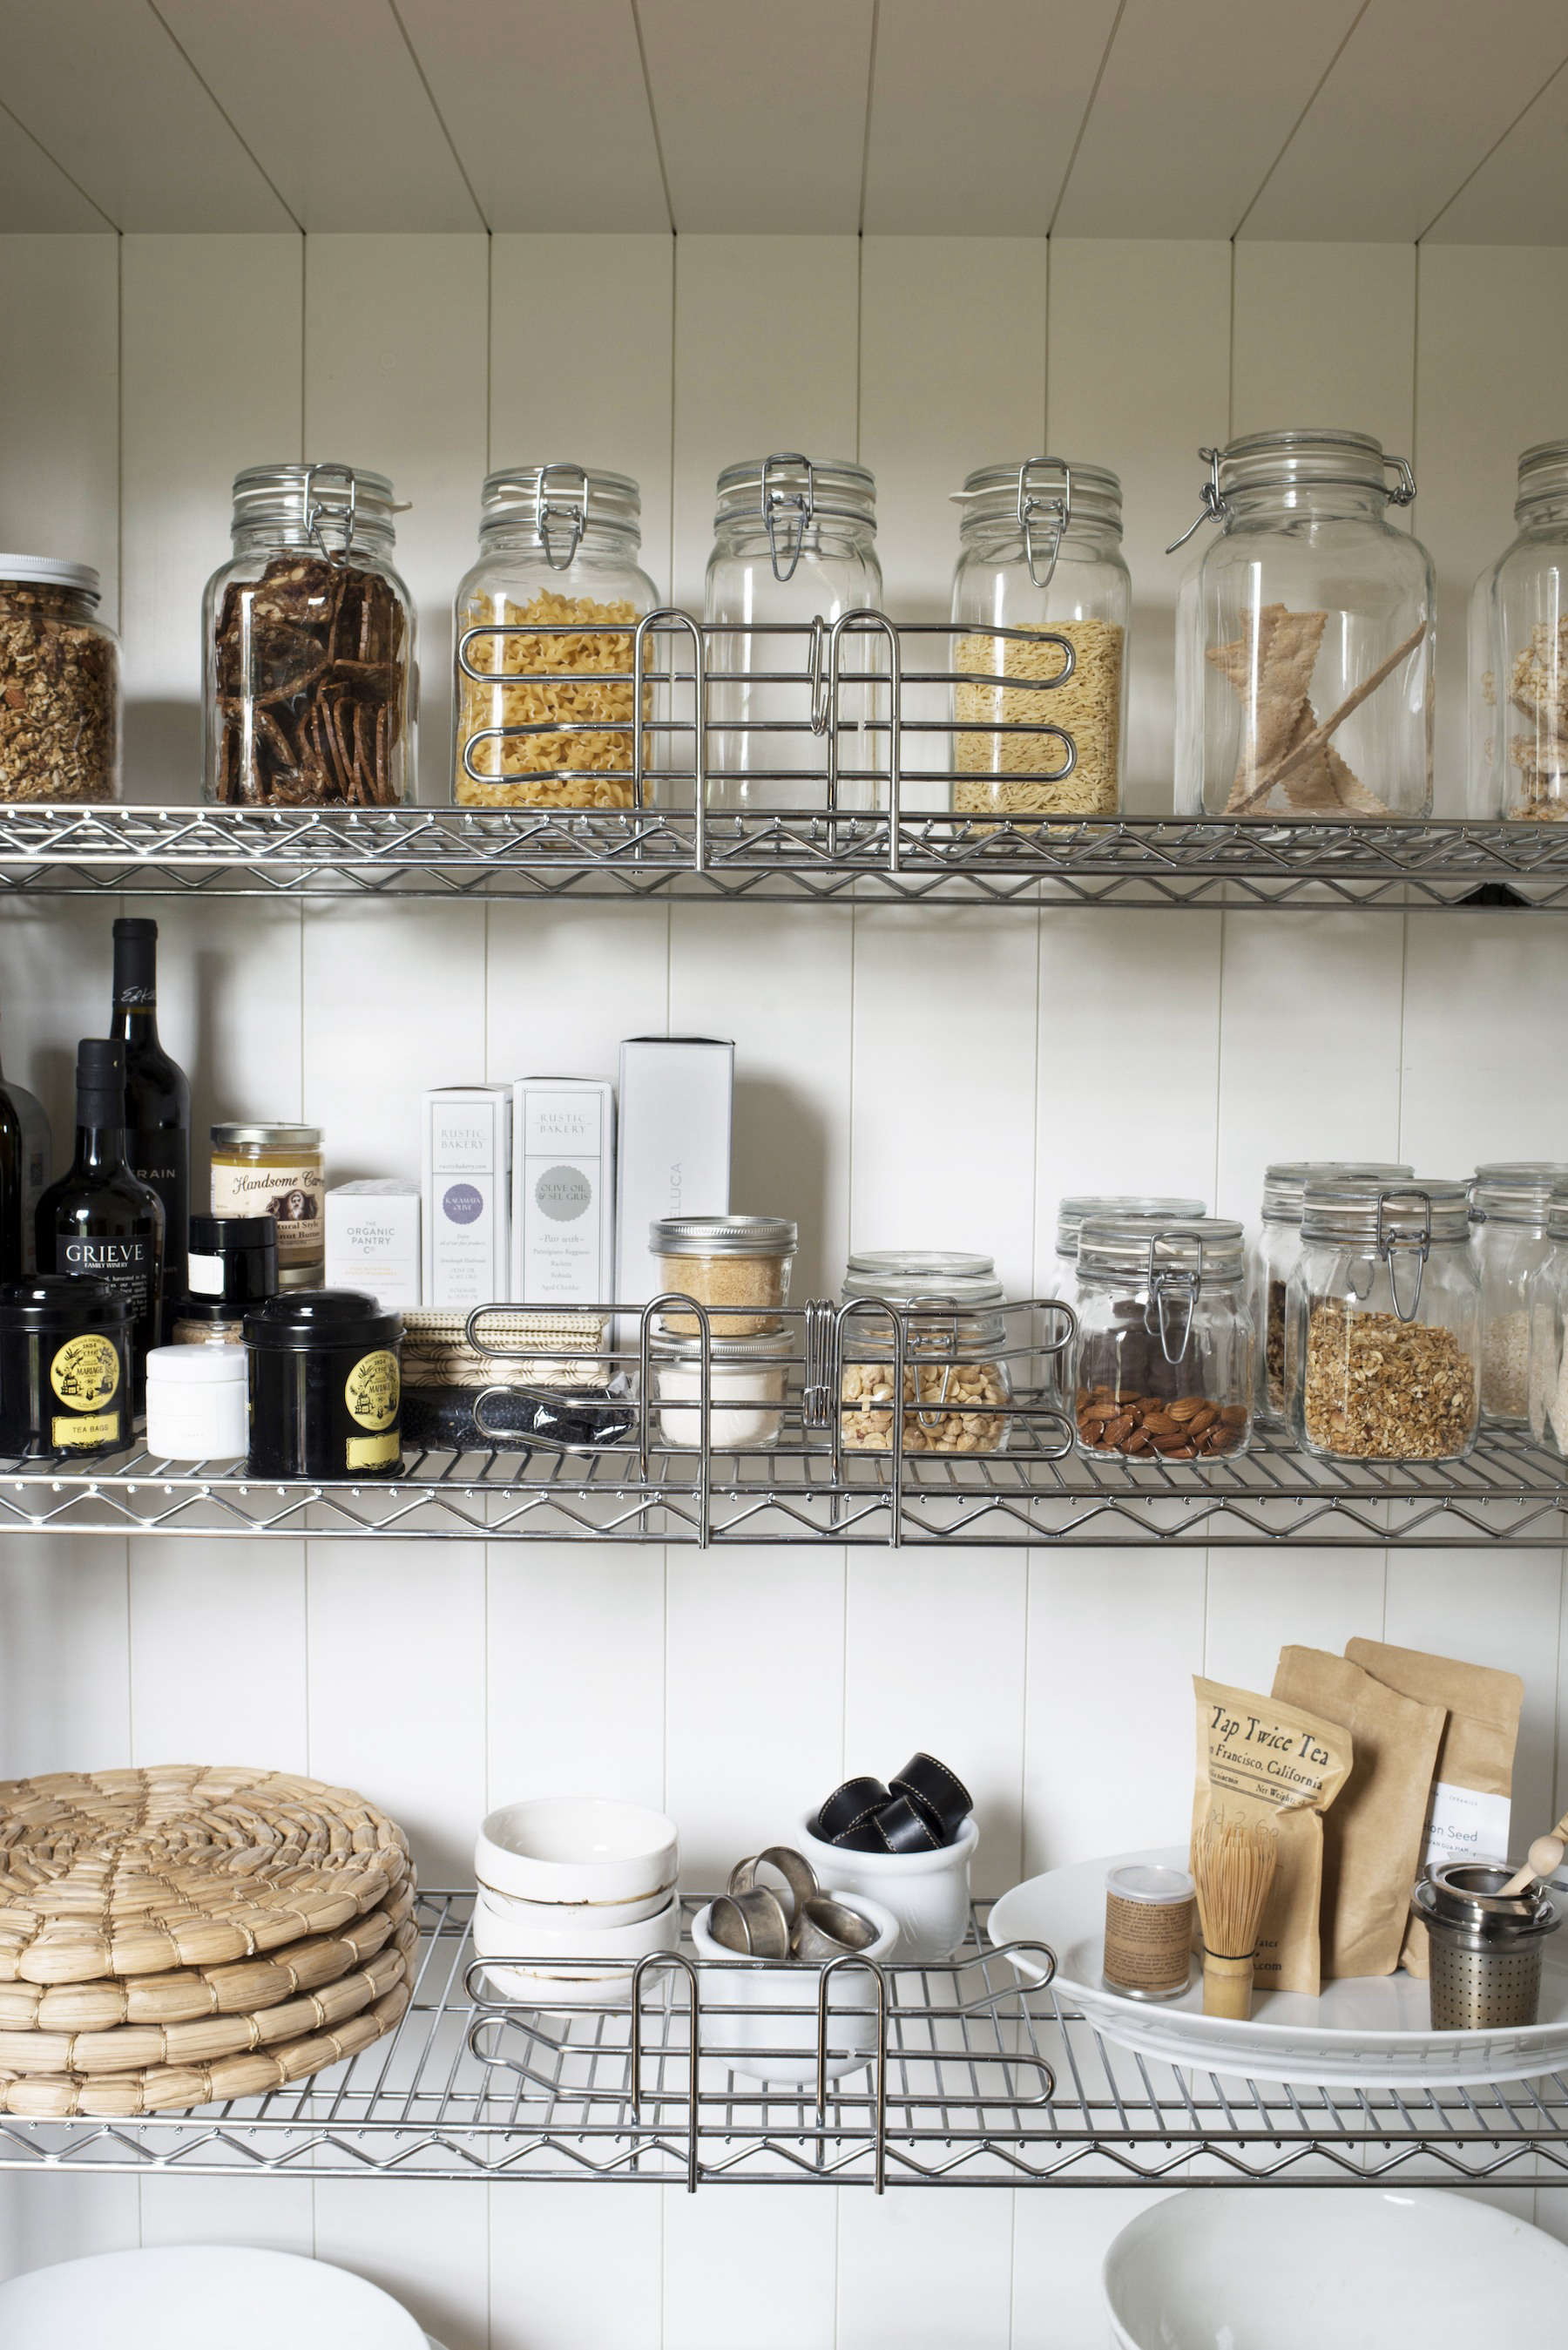 """Says Mill Valley, California, architect Barbara Chambers of her own pantry, """"I realized this could be a fun design if I focused on what it looked like instead of what I was going to stuff in there."""" See more of Barbara's (very tidy) home in House Call: An Exercise in Order with Architect Barbara Chambers. Photograph by Andres Gonzalez for Remodelista."""